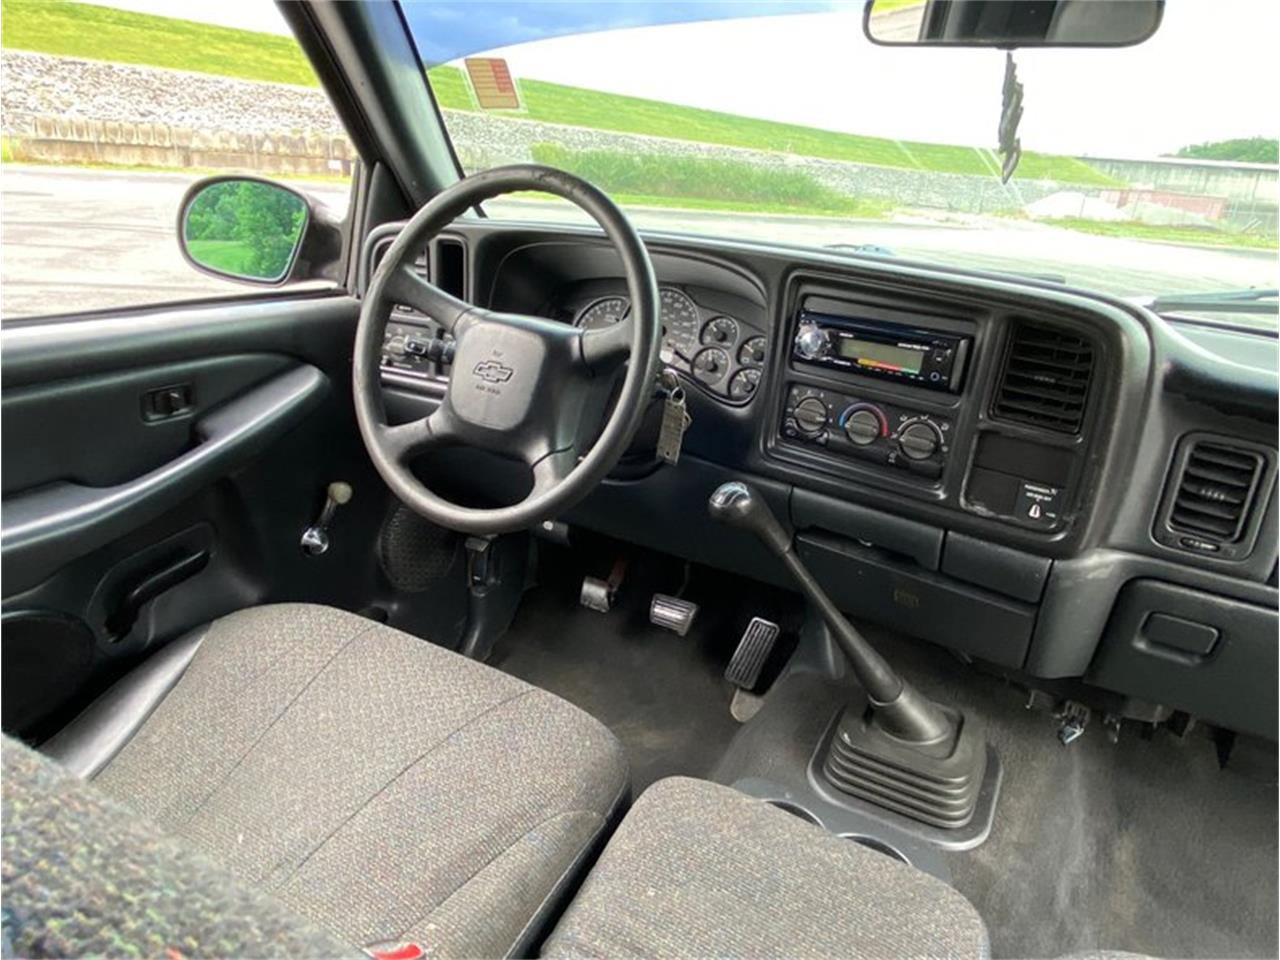 2000 Chevrolet Silverado (CC-1356872) for sale in Lenoir City, Tennessee